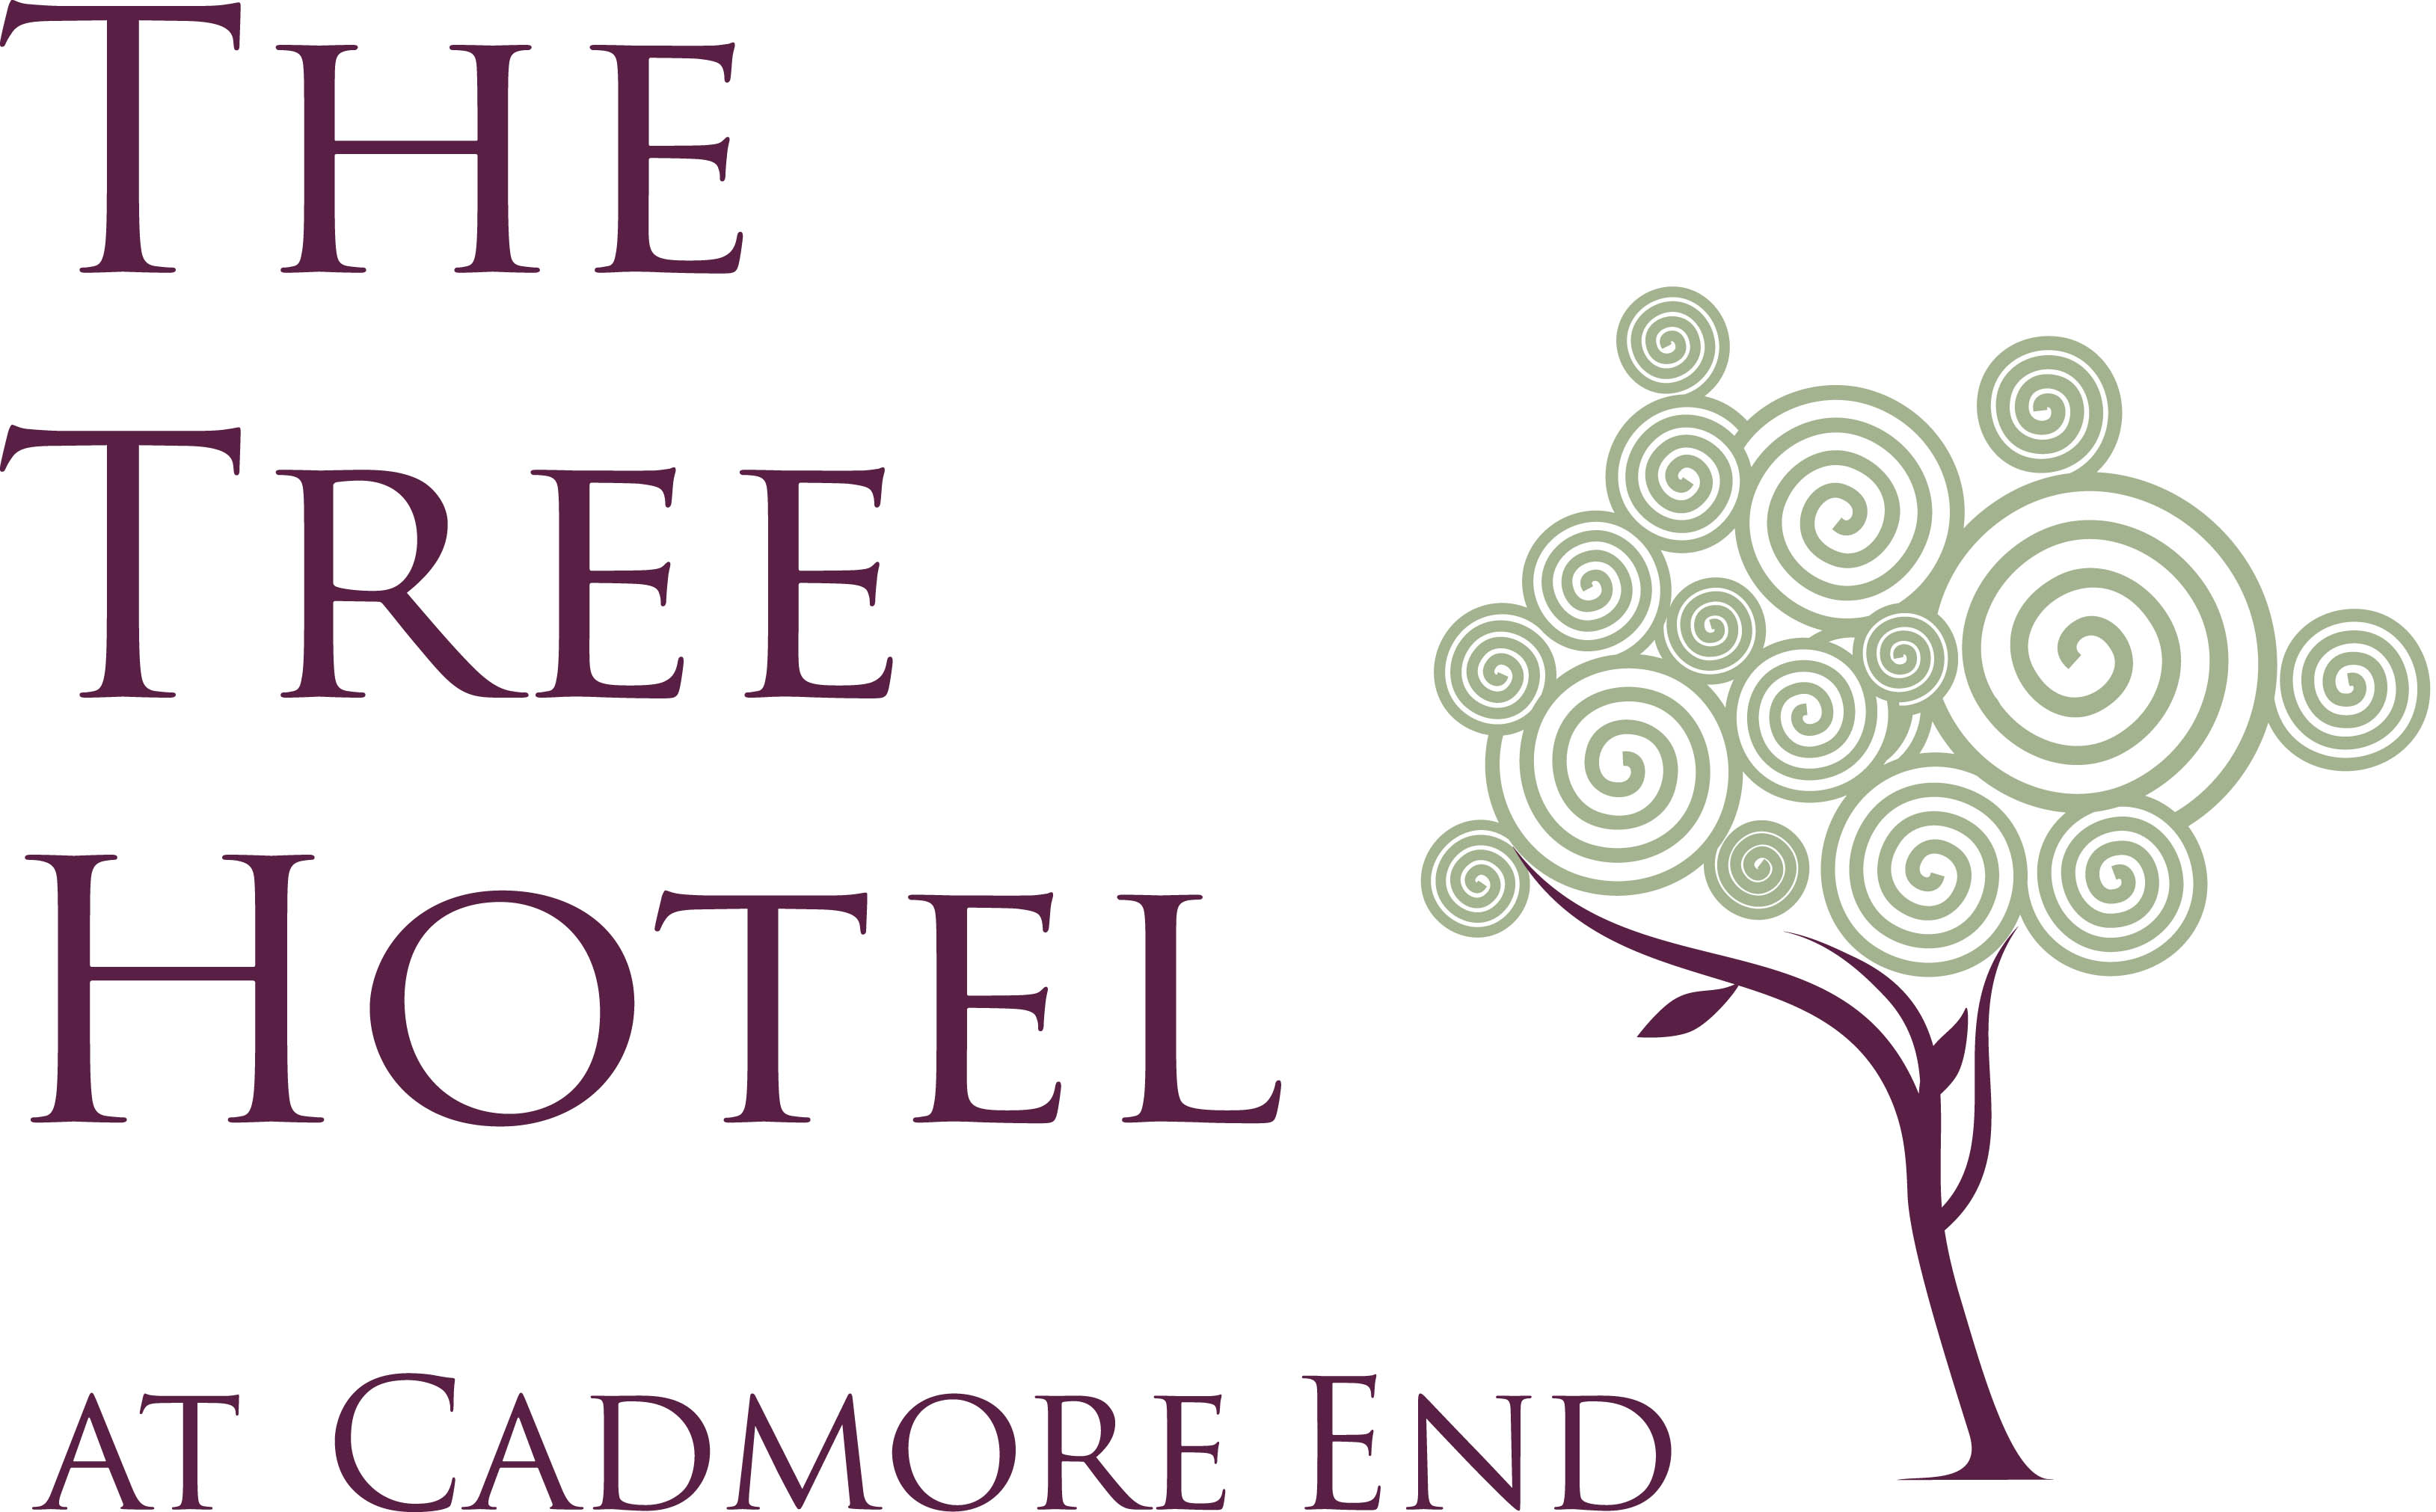 Logo for The Tree Hotel at Cadmore End